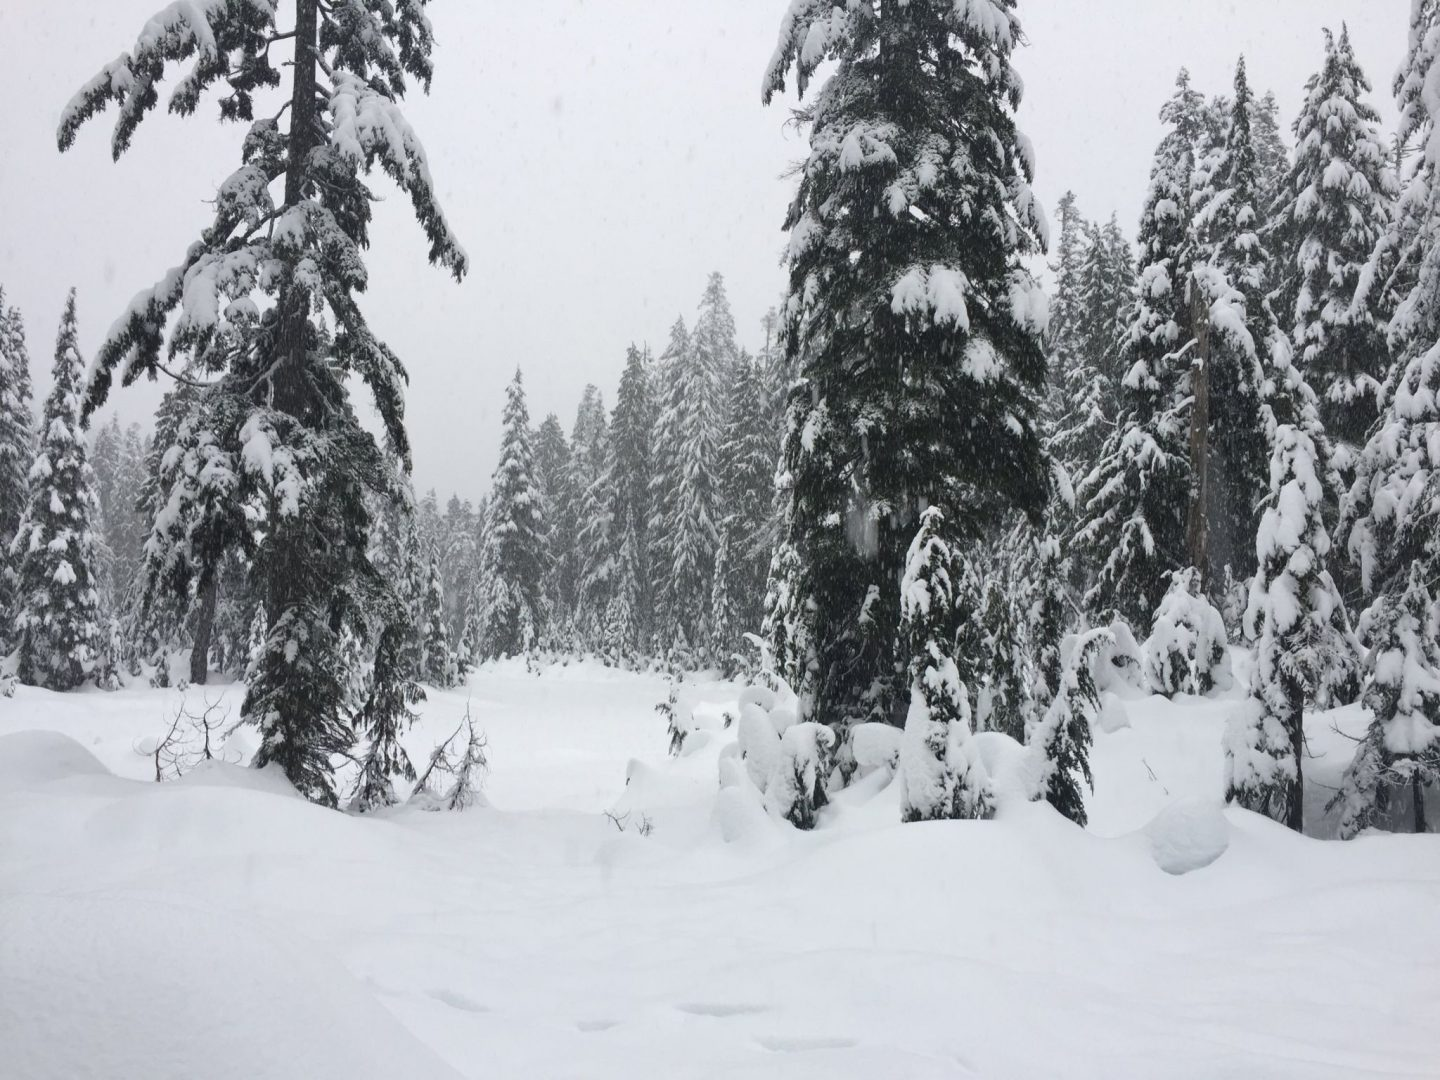 Snow and trees on Mount Seymour, Vancouver